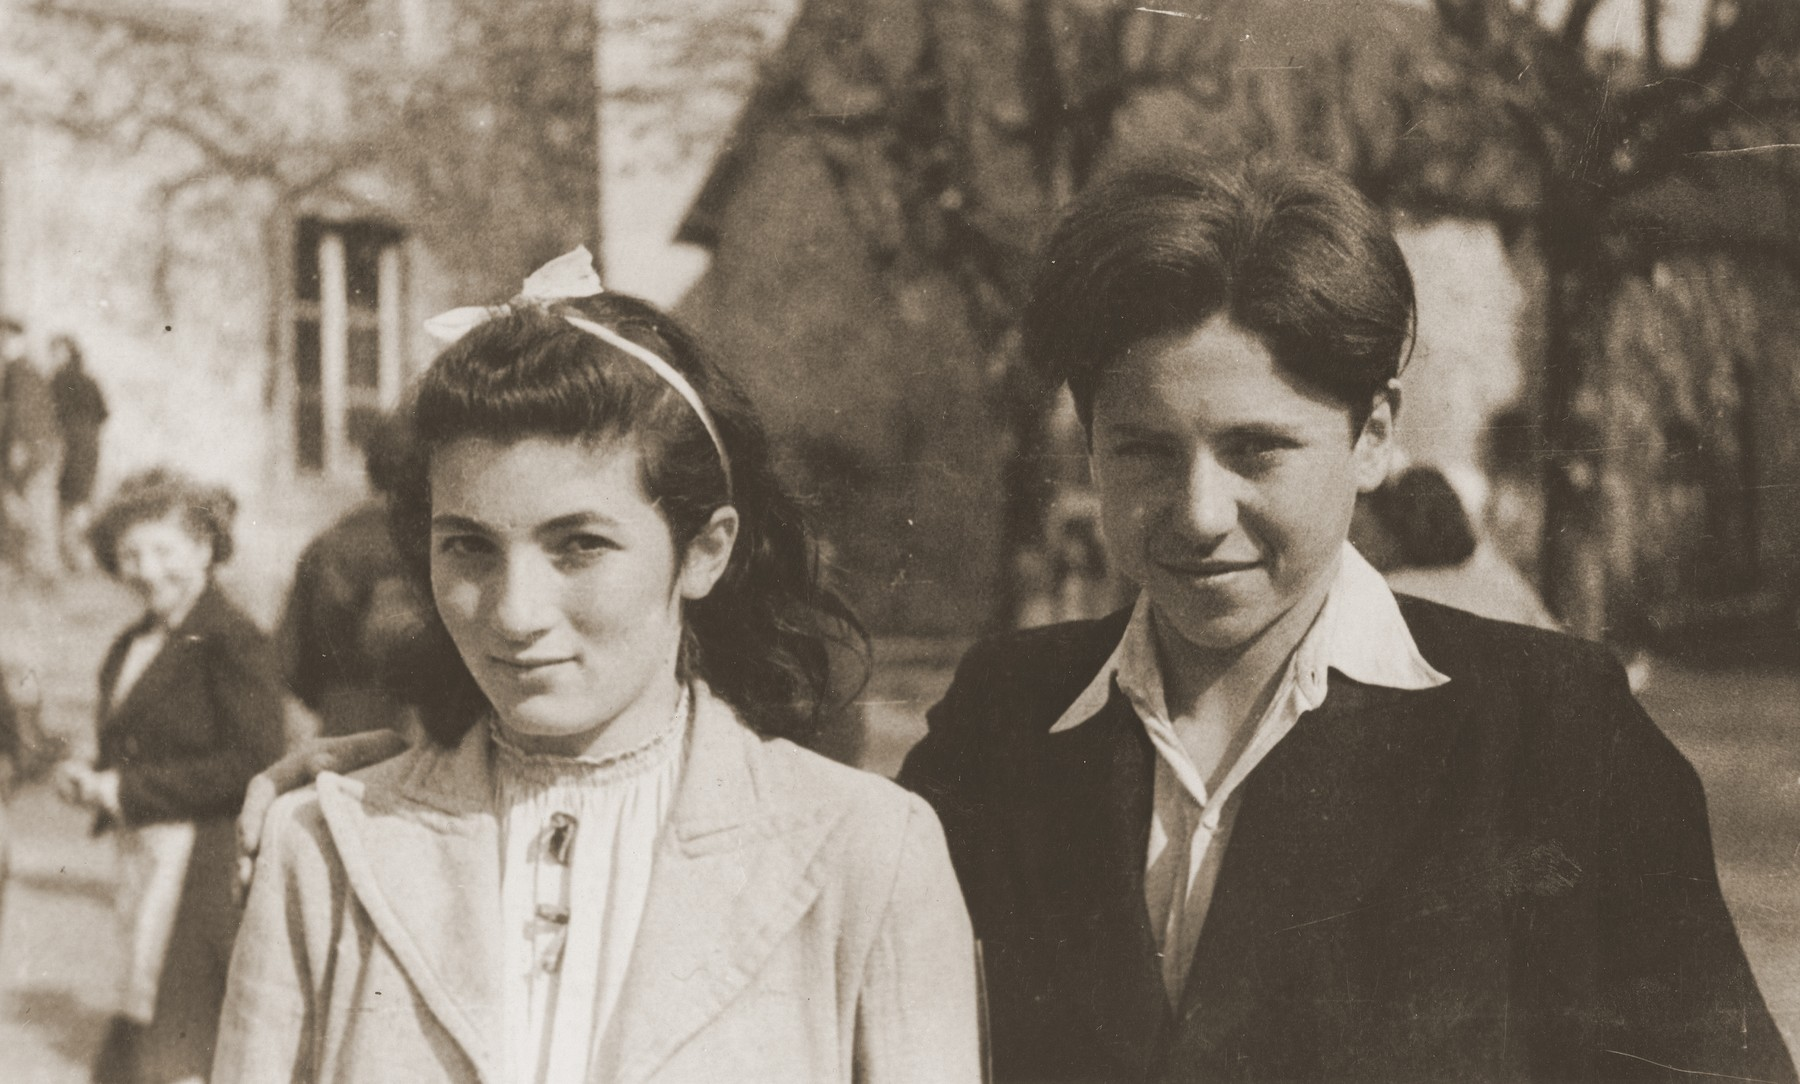 Heinz Stephan Lewy poses with Louise Budnick at the Château de Chabannes OSE (Oeuvre de secours aux Enfants) home near Limoges.    The photo was inscribed by Andree and given to Heinz on the eve of his departure for America.